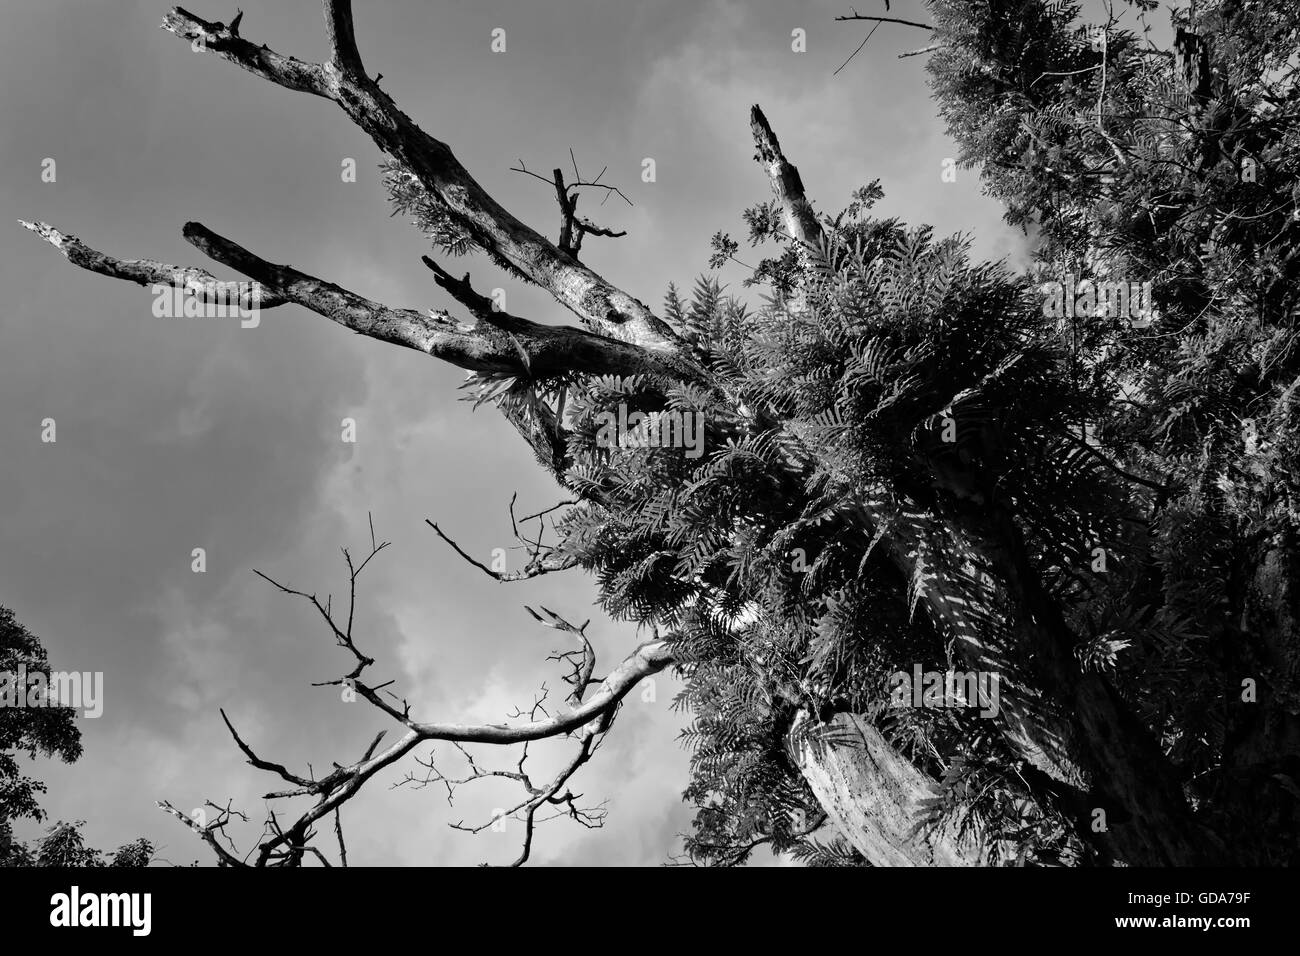 new leaves emerging from dead tree below overcast sky in black and white. - Stock Image